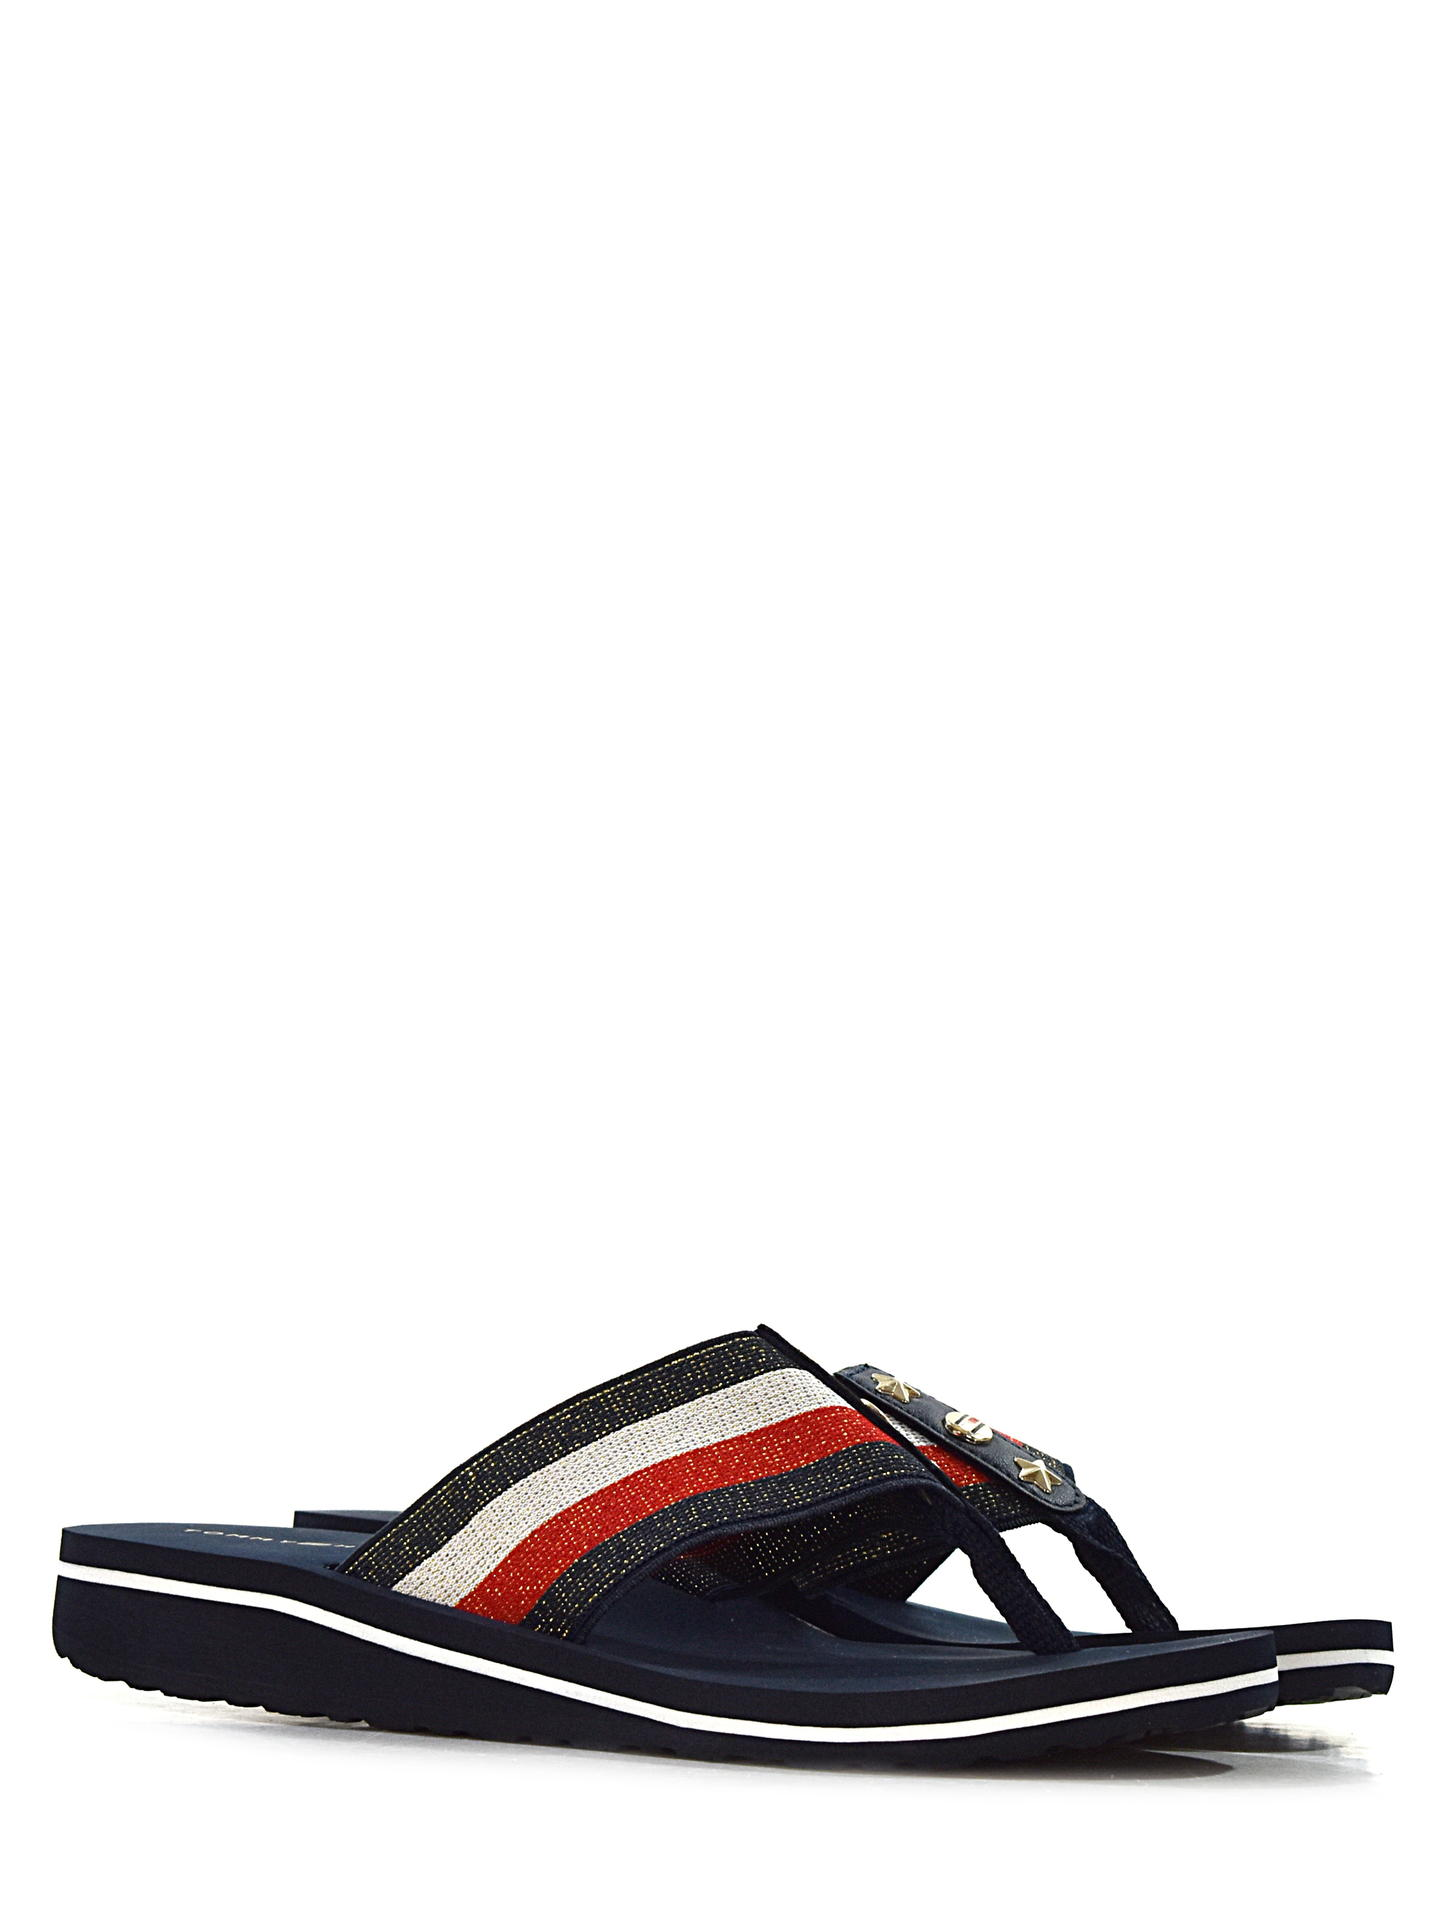 SANDALO BASSO TOMMY HILFIGER W026353 MULTICOLOR